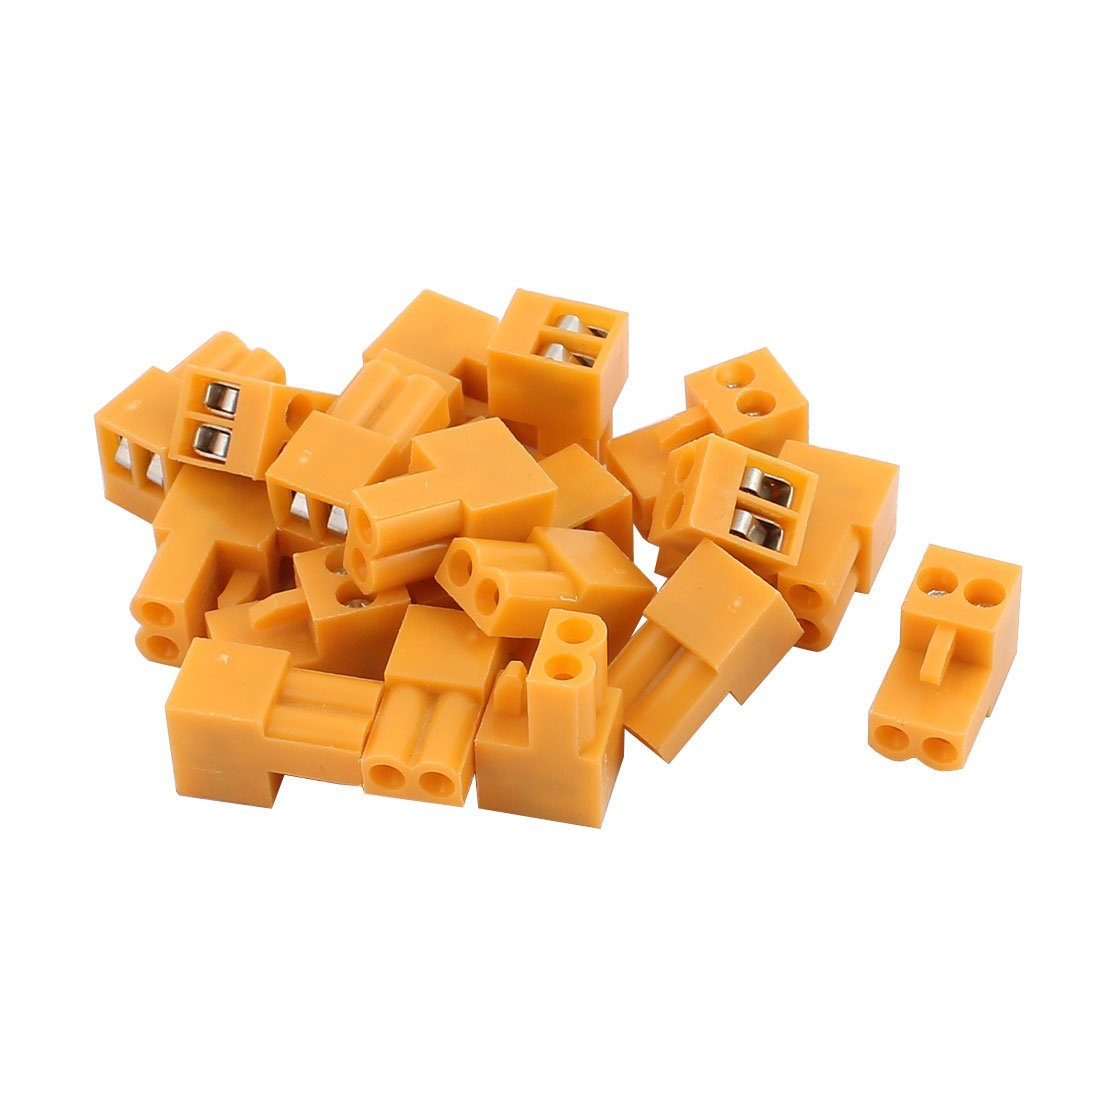 uxcell 20Pcs 300V HT3.96K 3.96mm Pitch 2P PCB Screw Terminal Block Connector Orange US-SA-AJD-222862